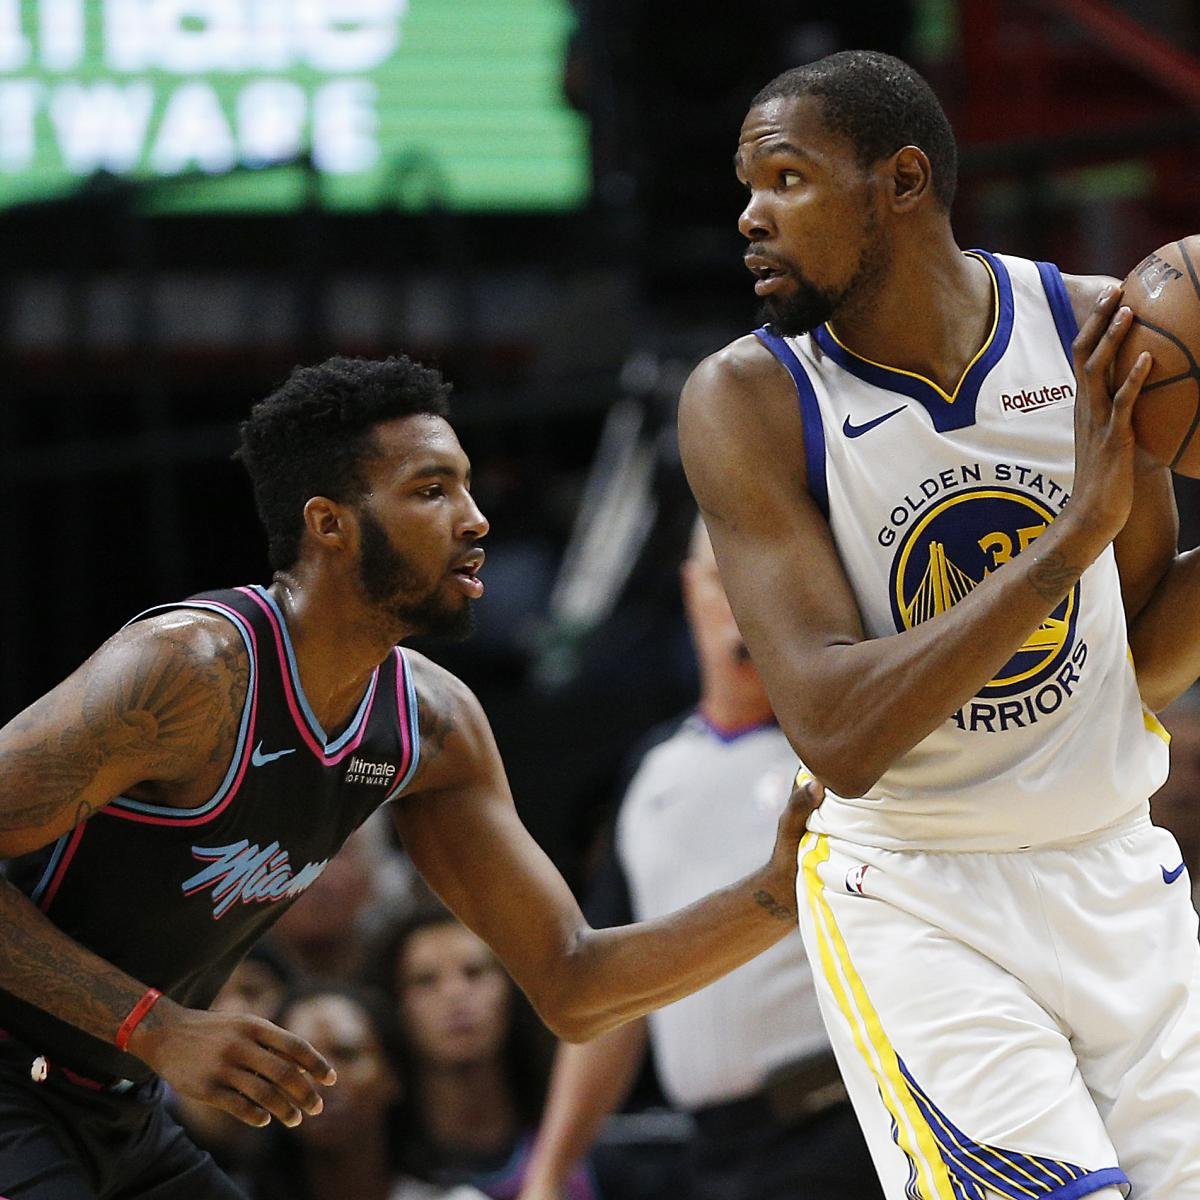 Kevin Durant Uses Clippers in Loss to Derrick Jones Jr. in ESPN NBA2K Tournament